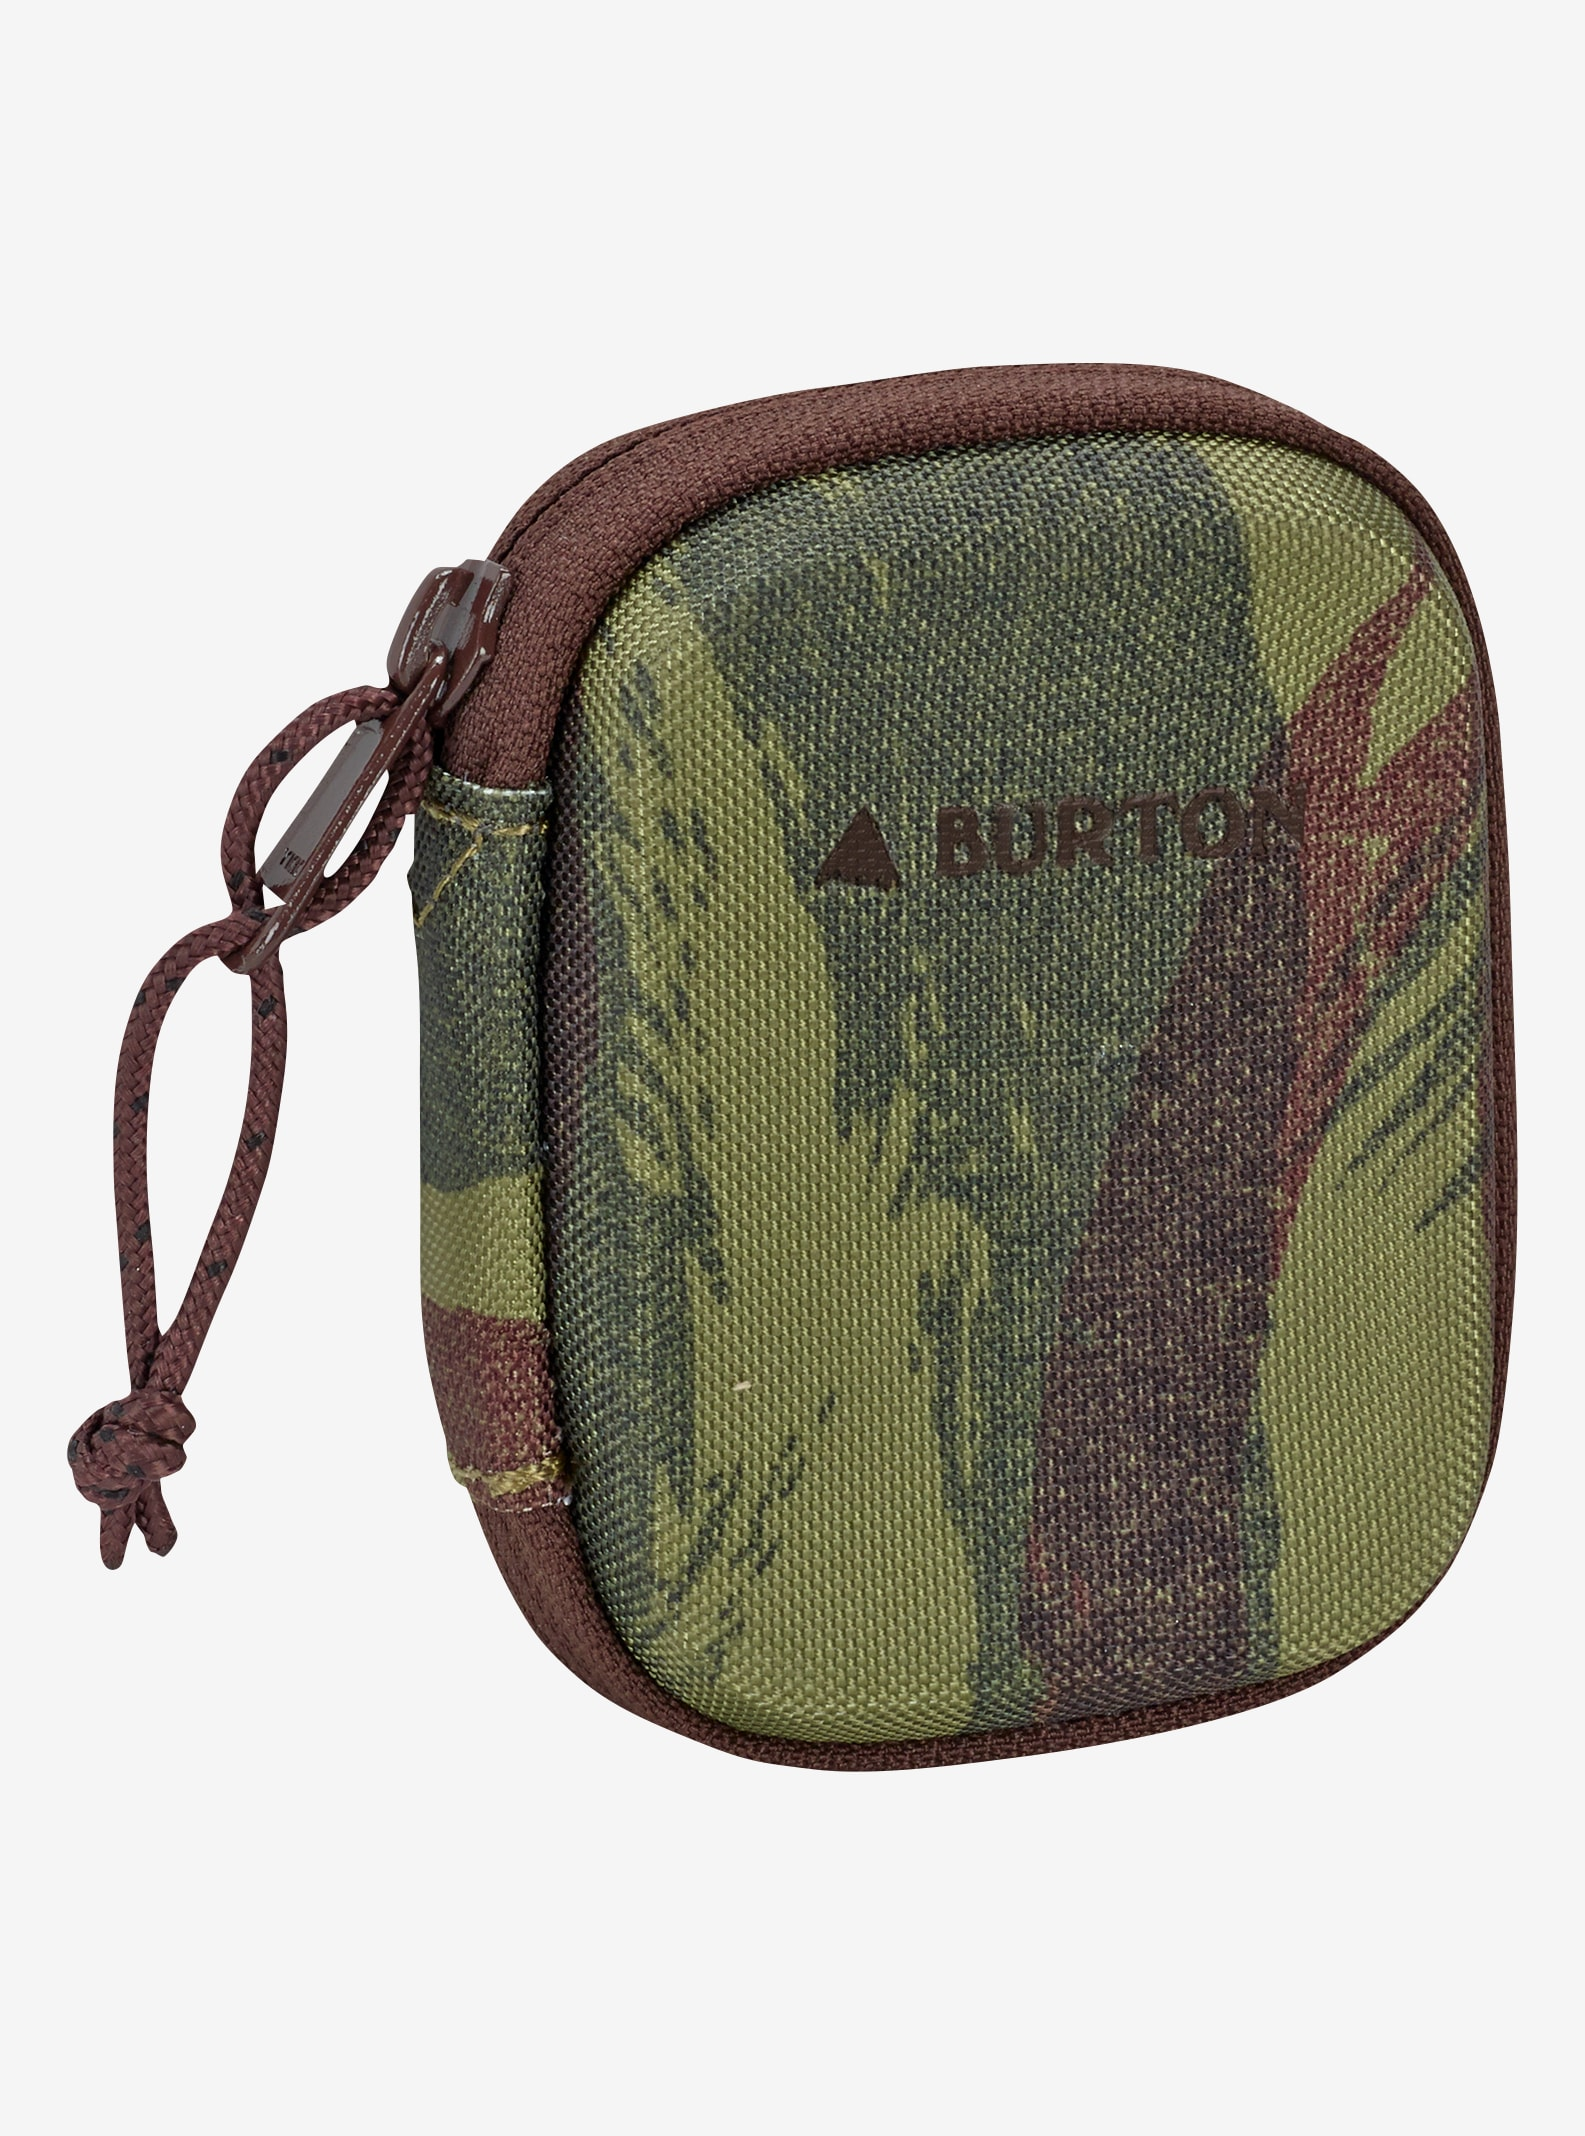 Burton The Kit shown in Brushstroke Camo Print